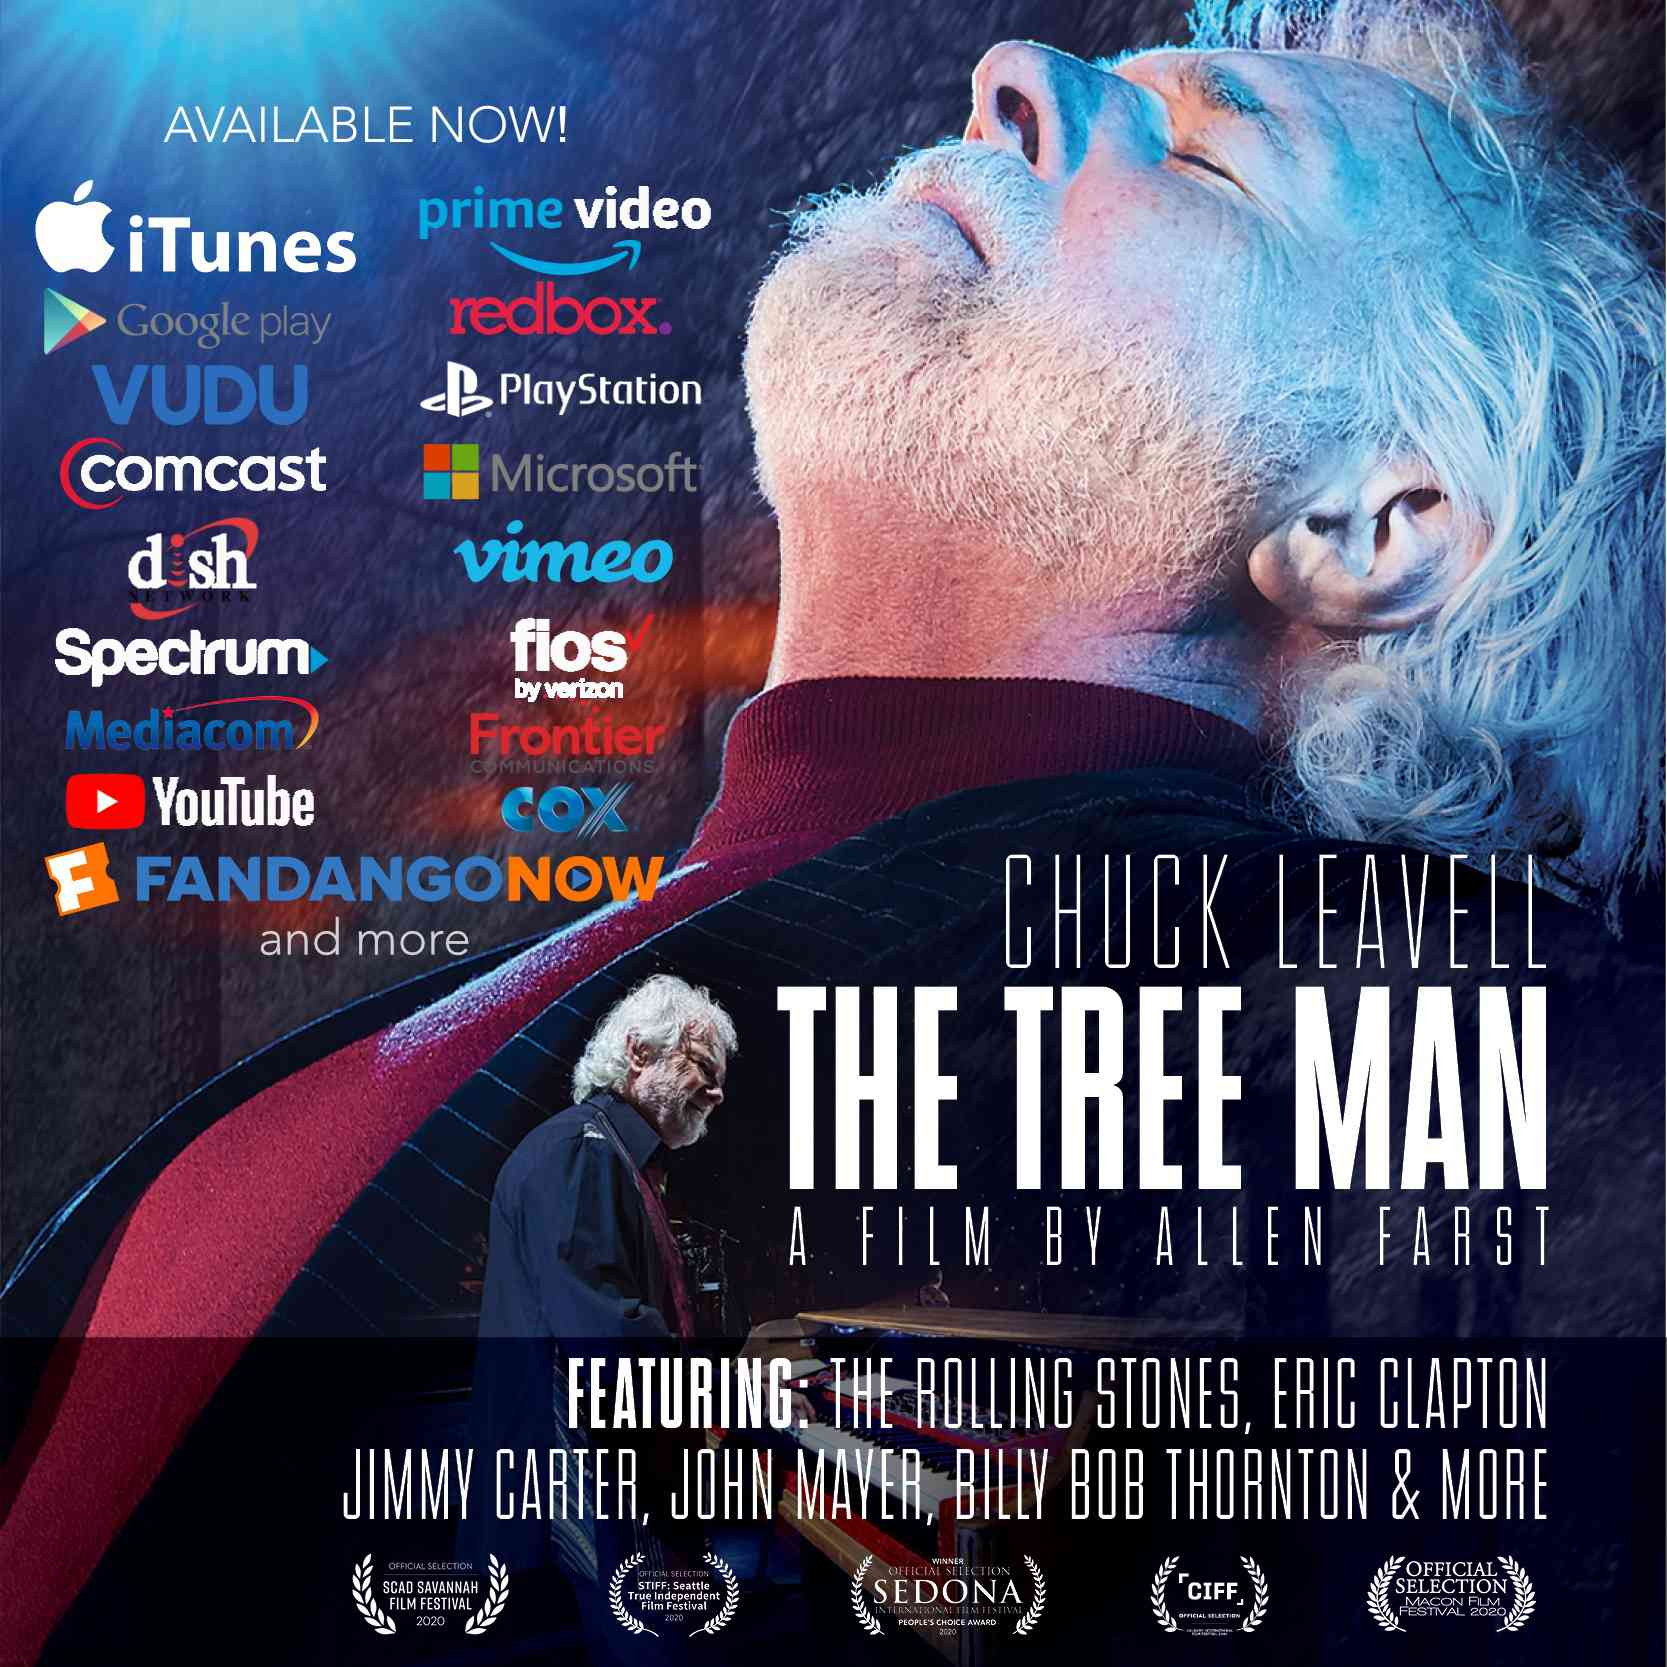 movie poster for chuck leavell documentary